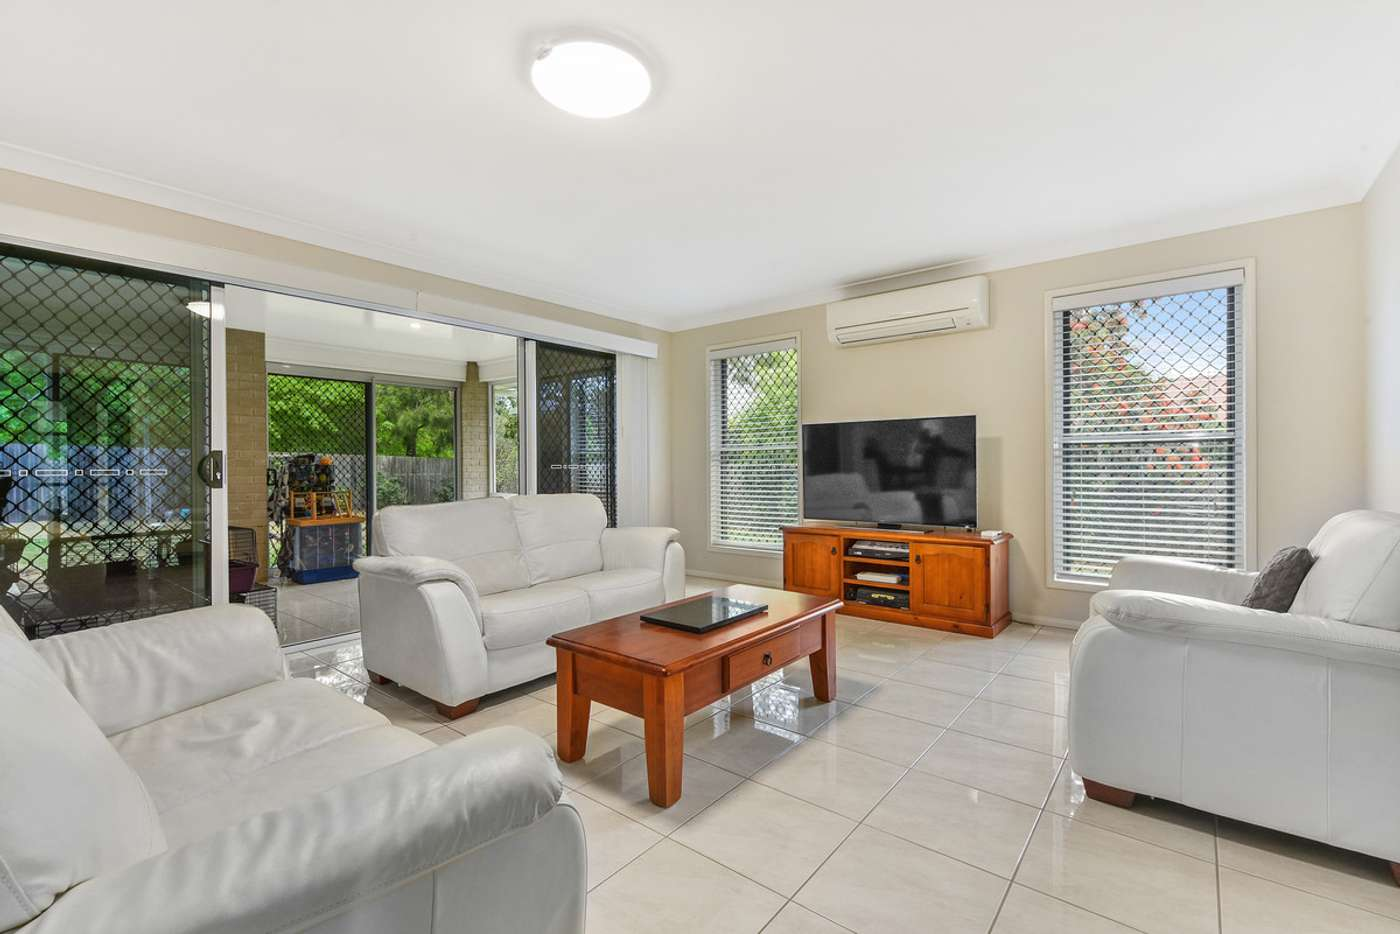 Sixth view of Homely house listing, 3 Casuarina Court, Highfields QLD 4352